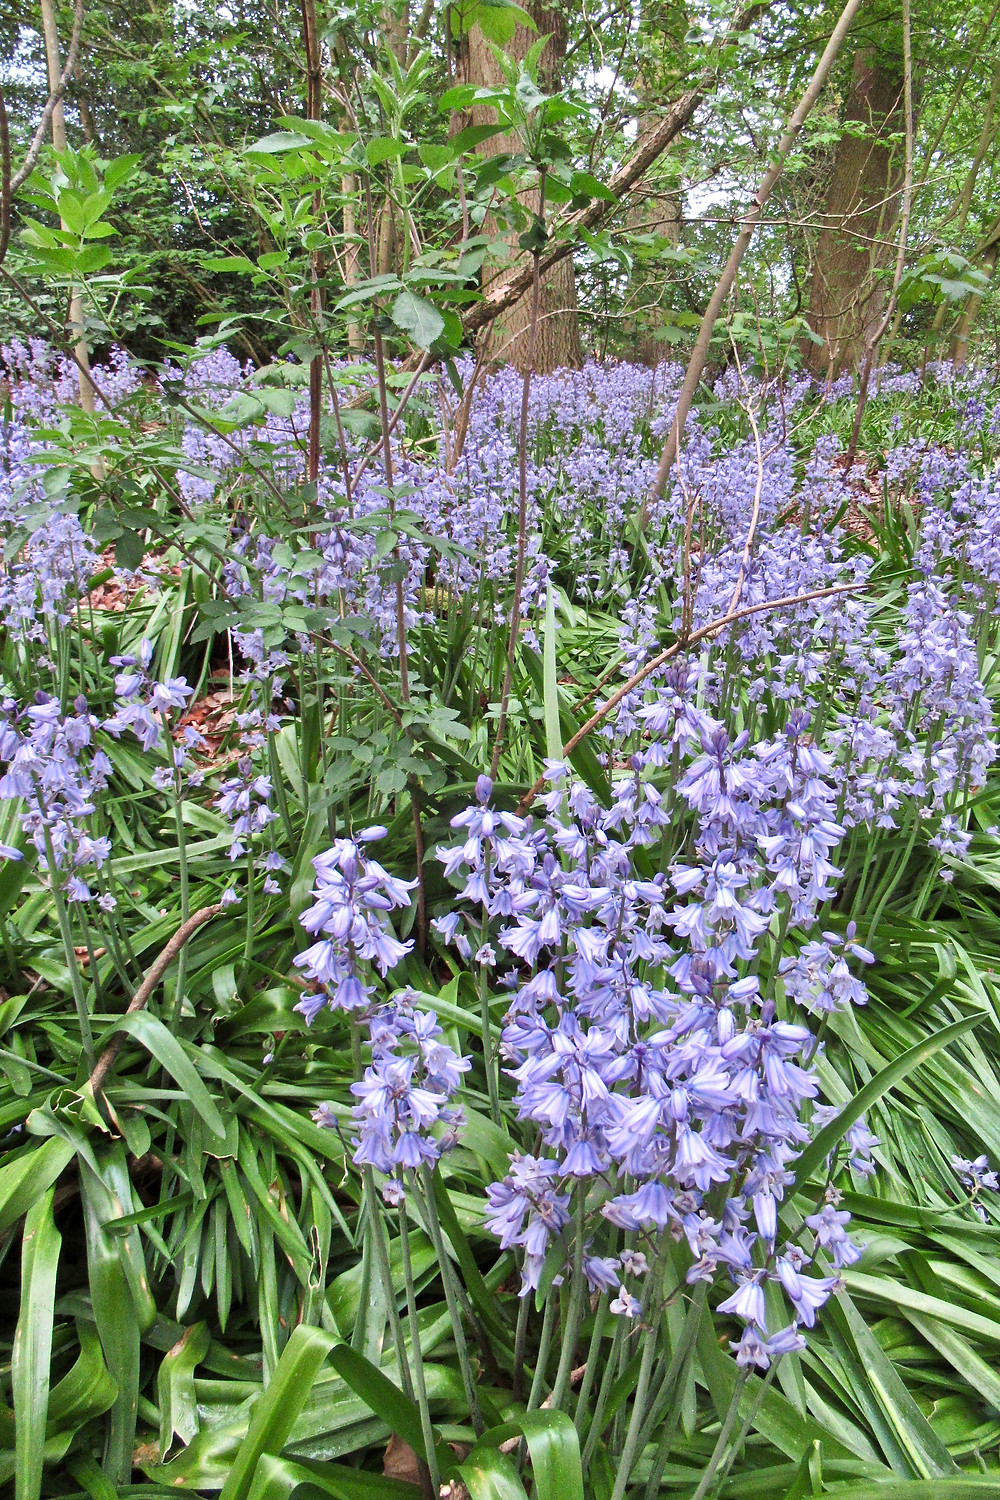 bluebells in the National Forest